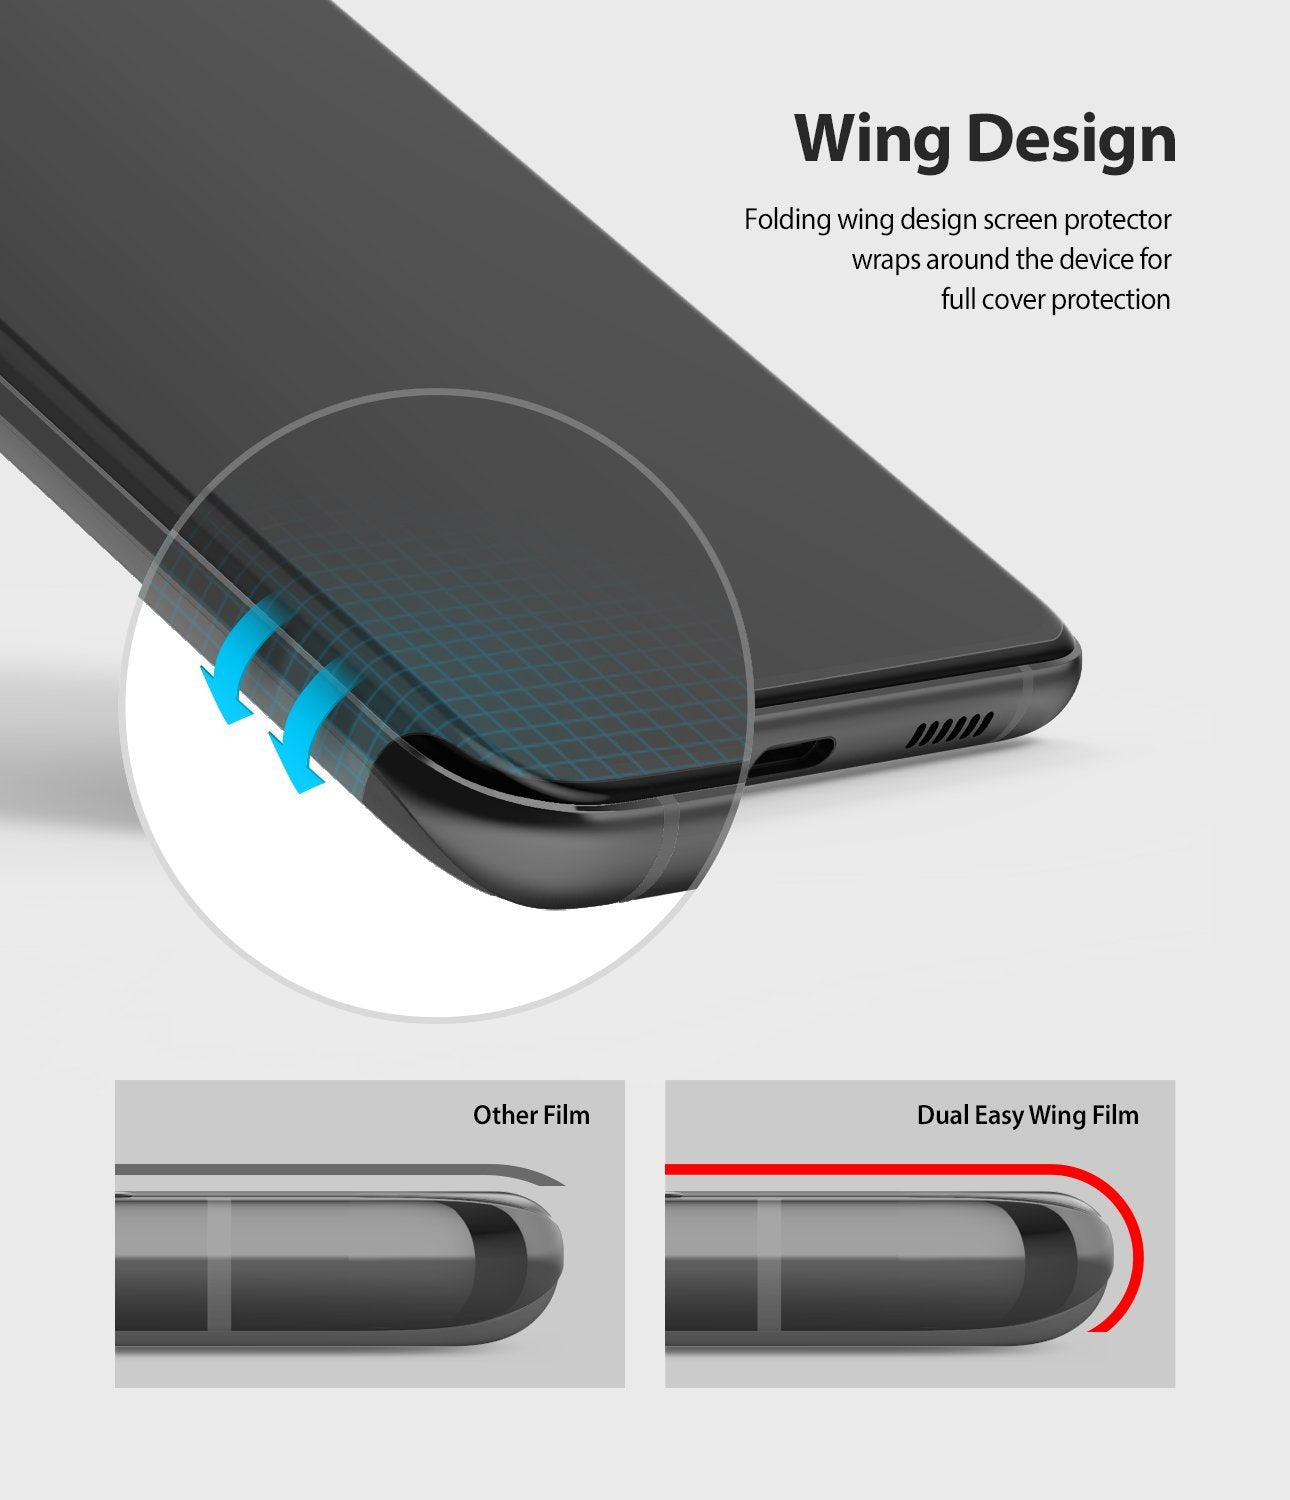 Galaxy S20 Plus ringke Dual Easy Film Wing Screen Protector 2 pack, wing design